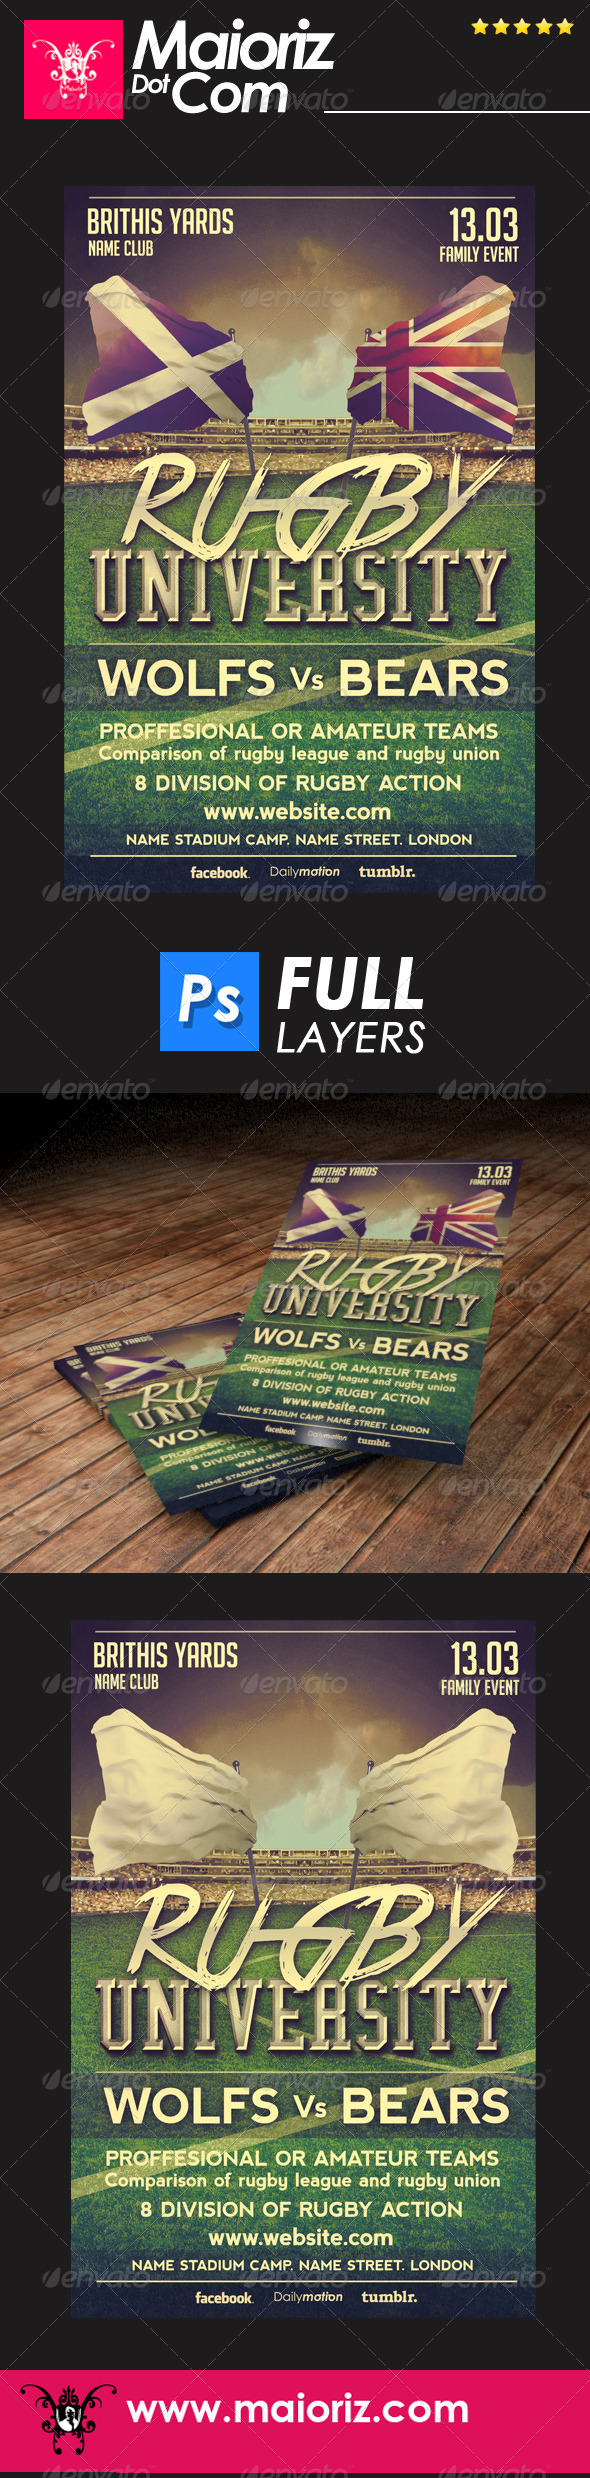 University Rugby Flyer - Sports Events